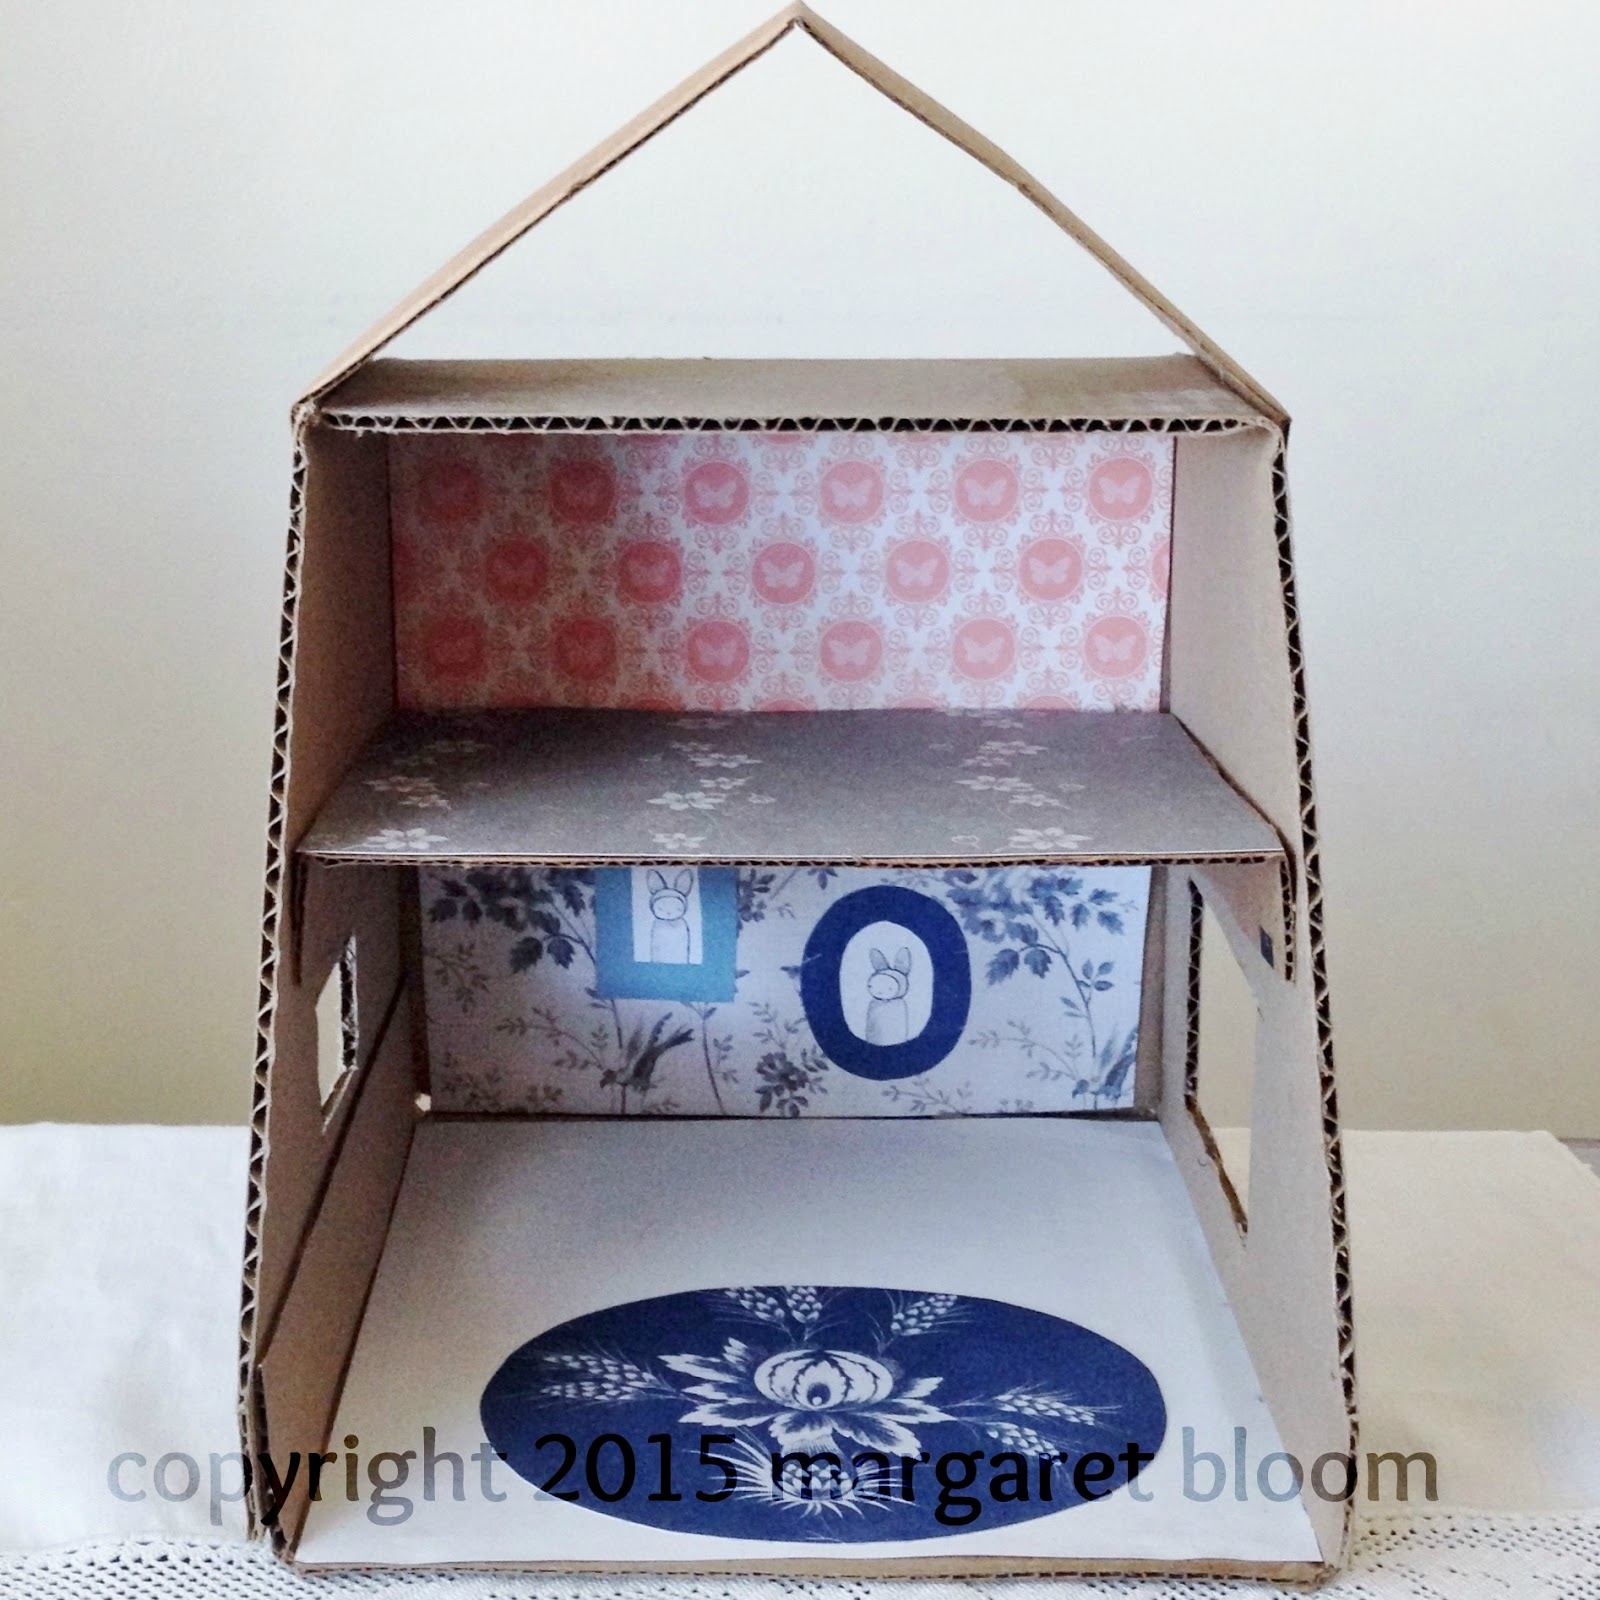 doll furniture recycled materials. How Will You Or Your Children Decorate Little Peg Doll House? Please Email Me Photos (or Post On My Facebook Page) If You\u0027re So Inclined. Furniture Recycled Materials A